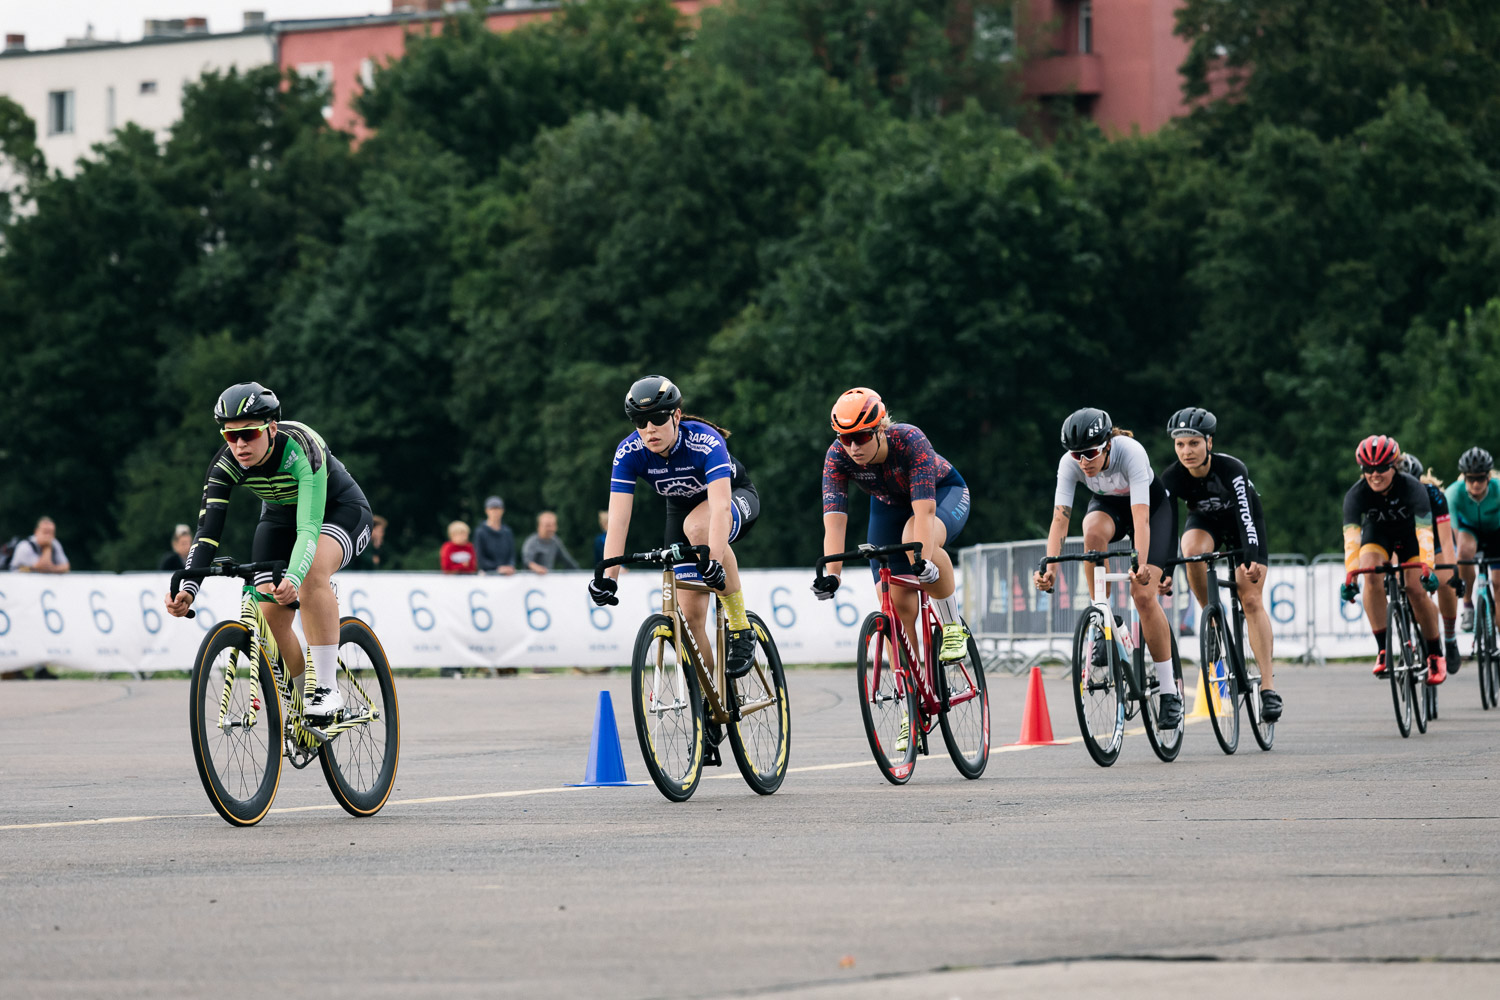 8bar-crit-fixed-gear-bike-race-stefanhaehnel-wmn-fxd-final-8